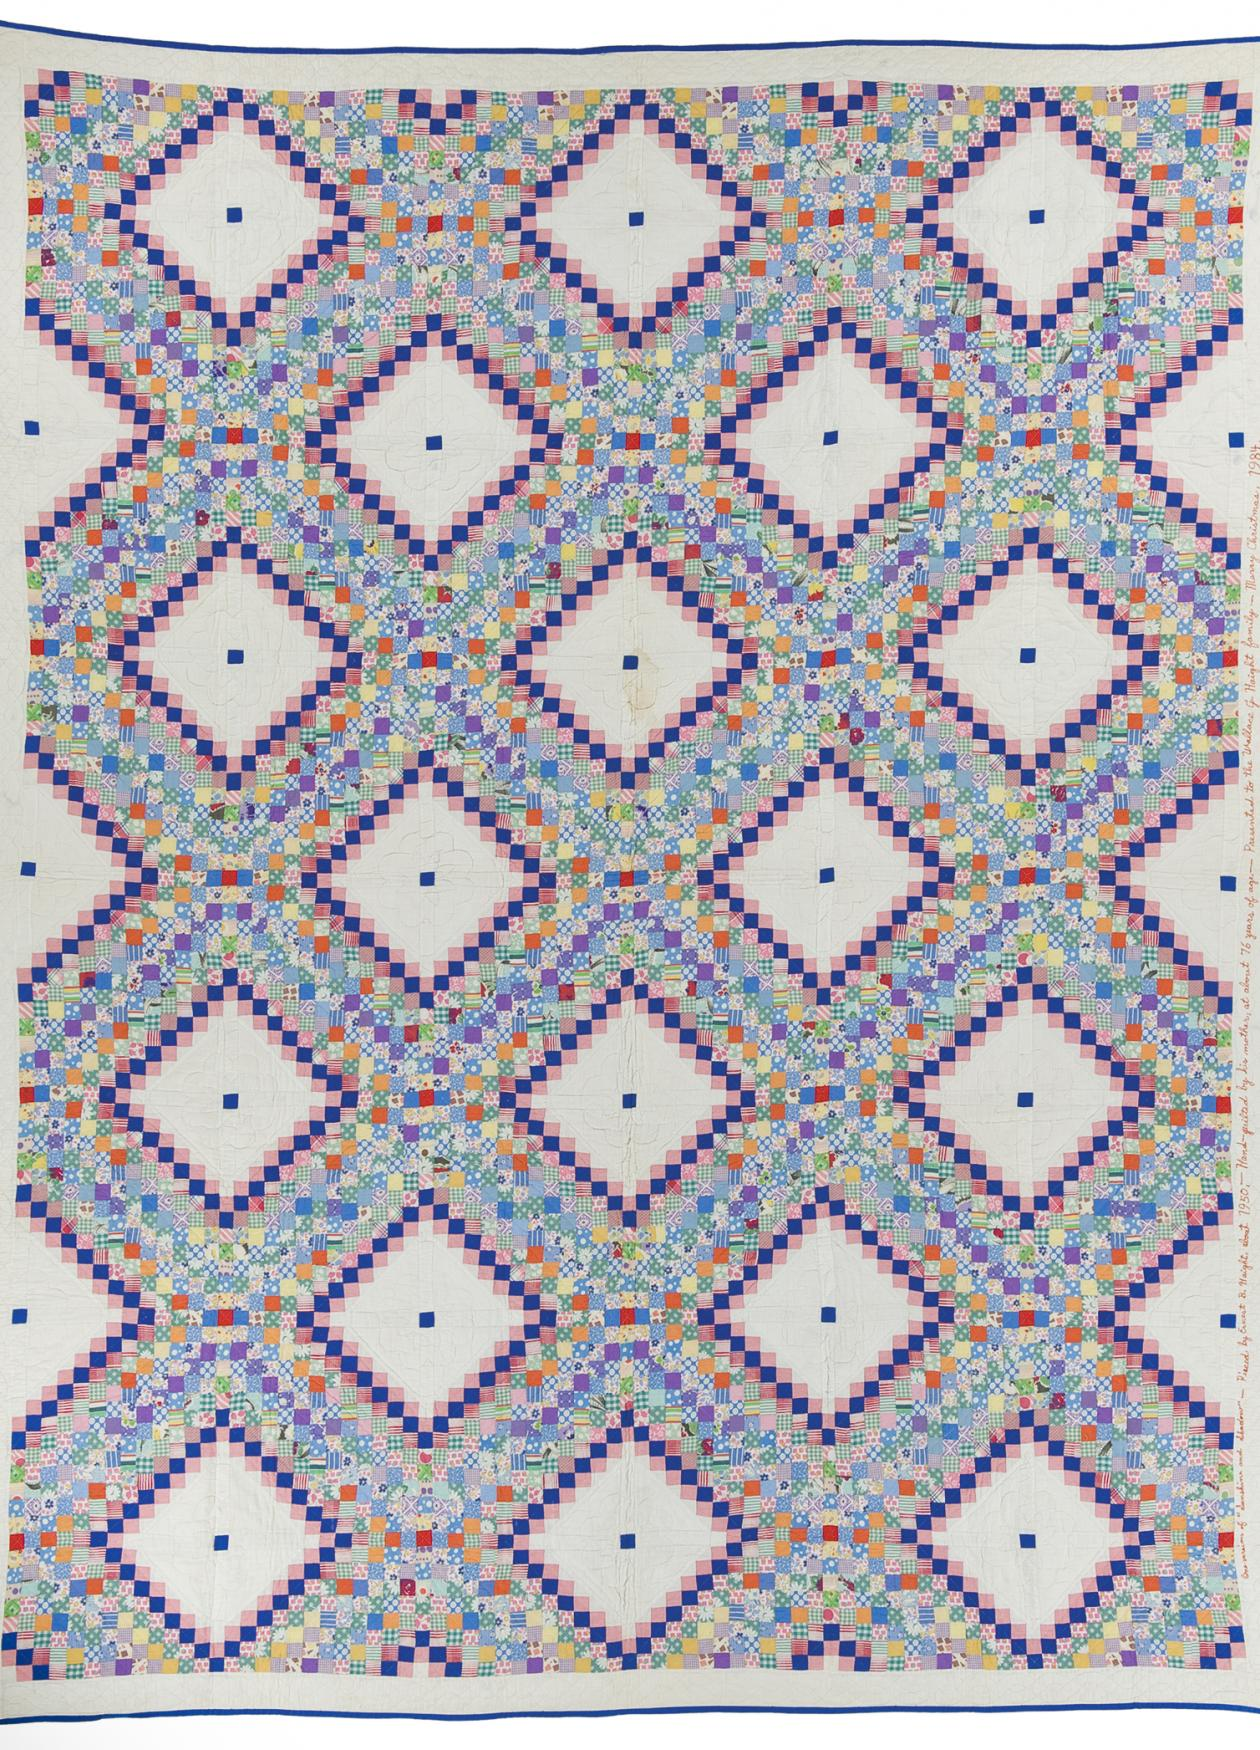 A multicolored quilt, edged in dark blue, with a pattern of white squares outlined with blue and pink dots